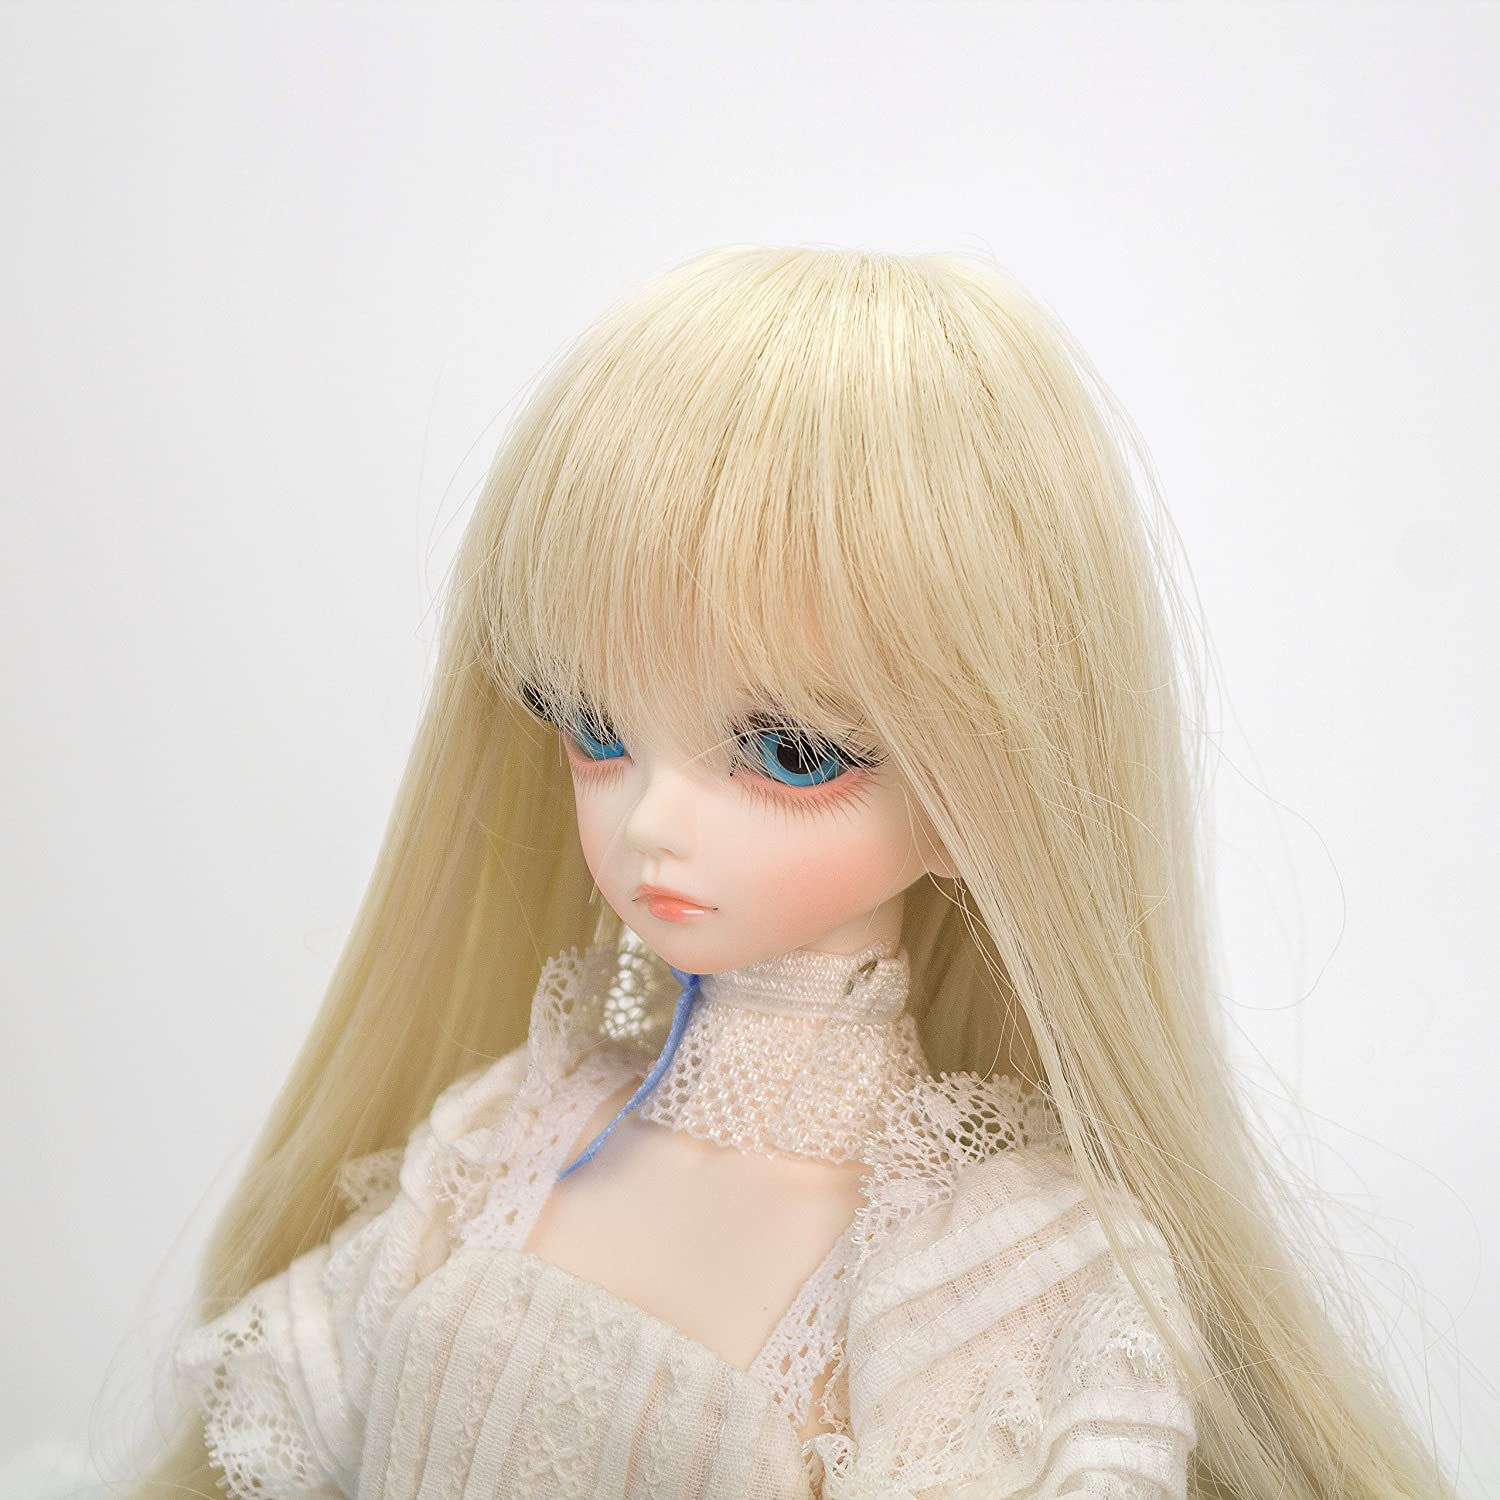 33# 1//3 BJD SD Doll Wig with 9-10 Inch BJD Doll Wig High Temperature Synthetic Fiber Long Dark Brown Curls Hair Wig BJD Doll Wigs for 1//3 BJD SD Doll